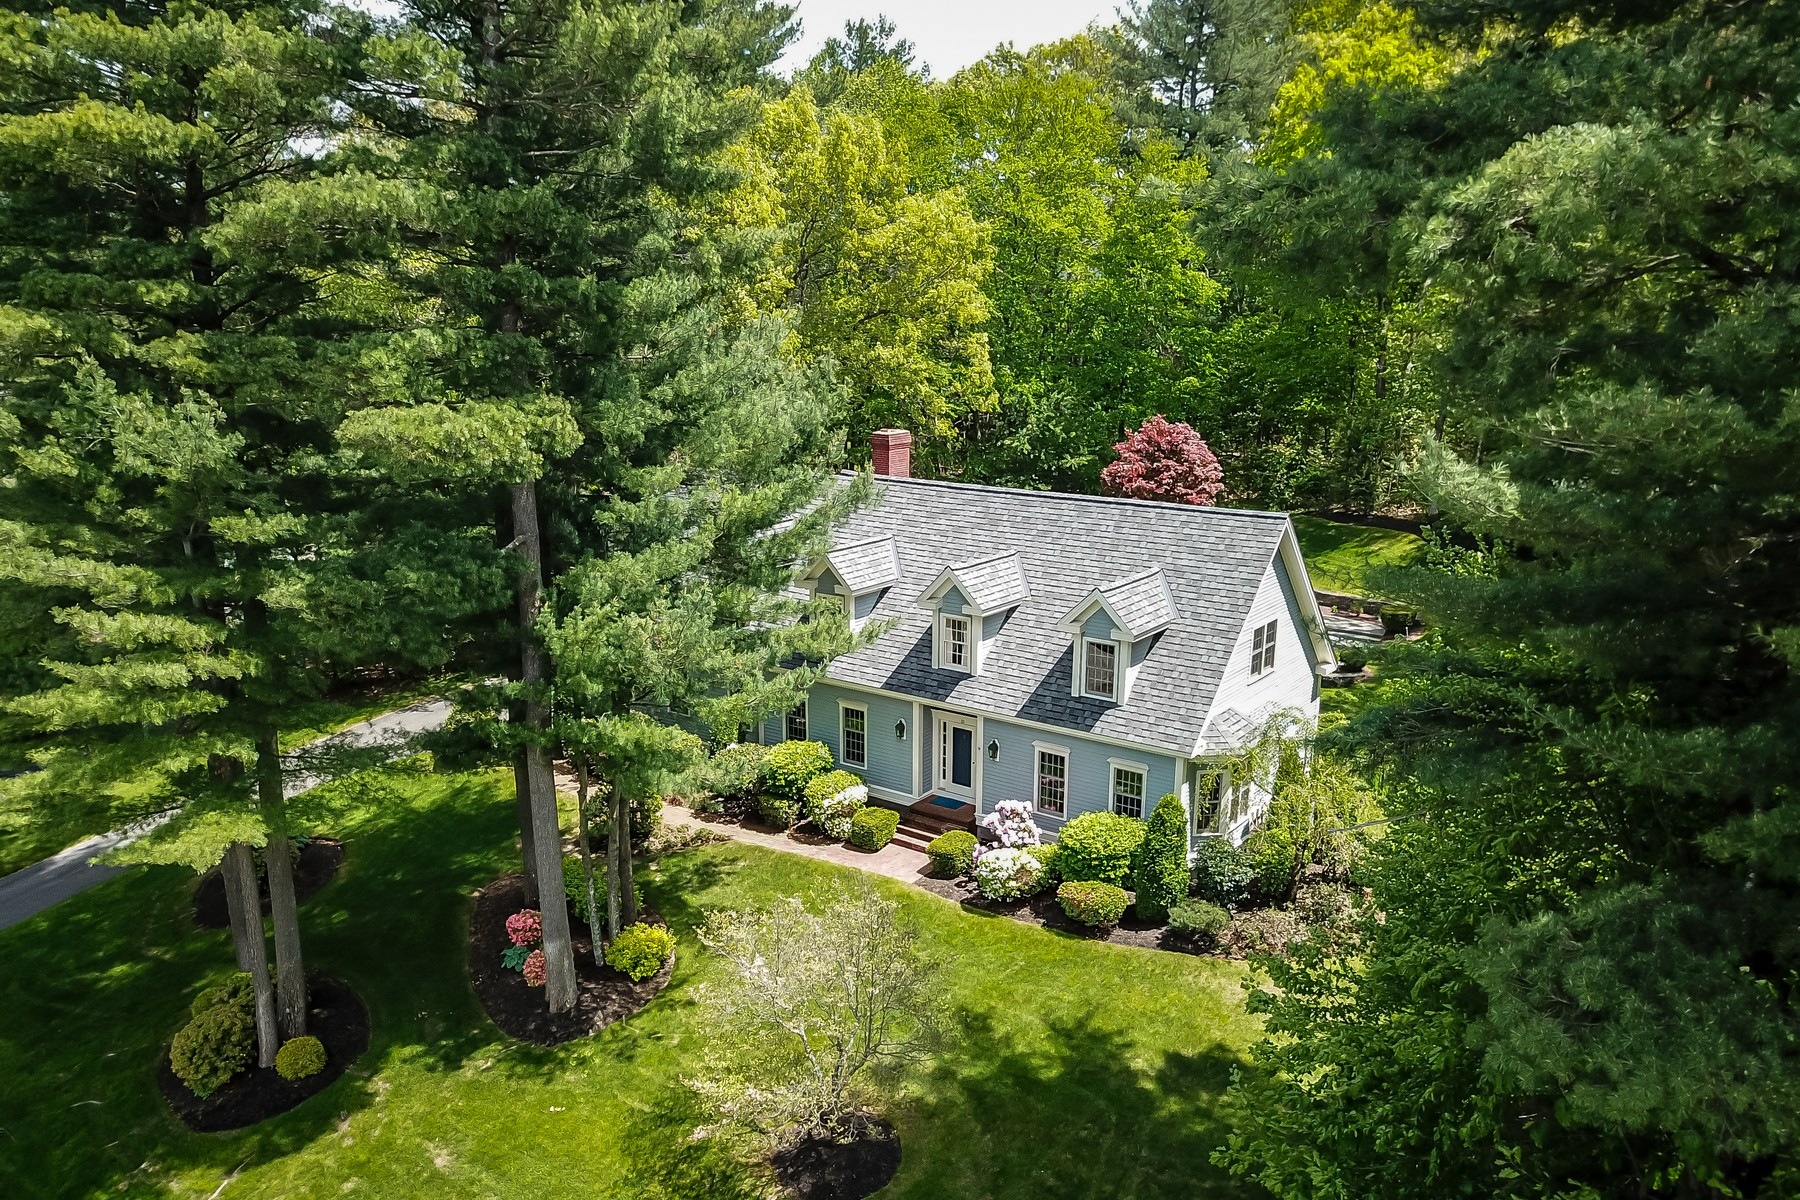 Single Family Homes for Active at Pristine Four Bedroom Cape 10 Bertis Adams Way Westborough, Massachusetts 01581 United States